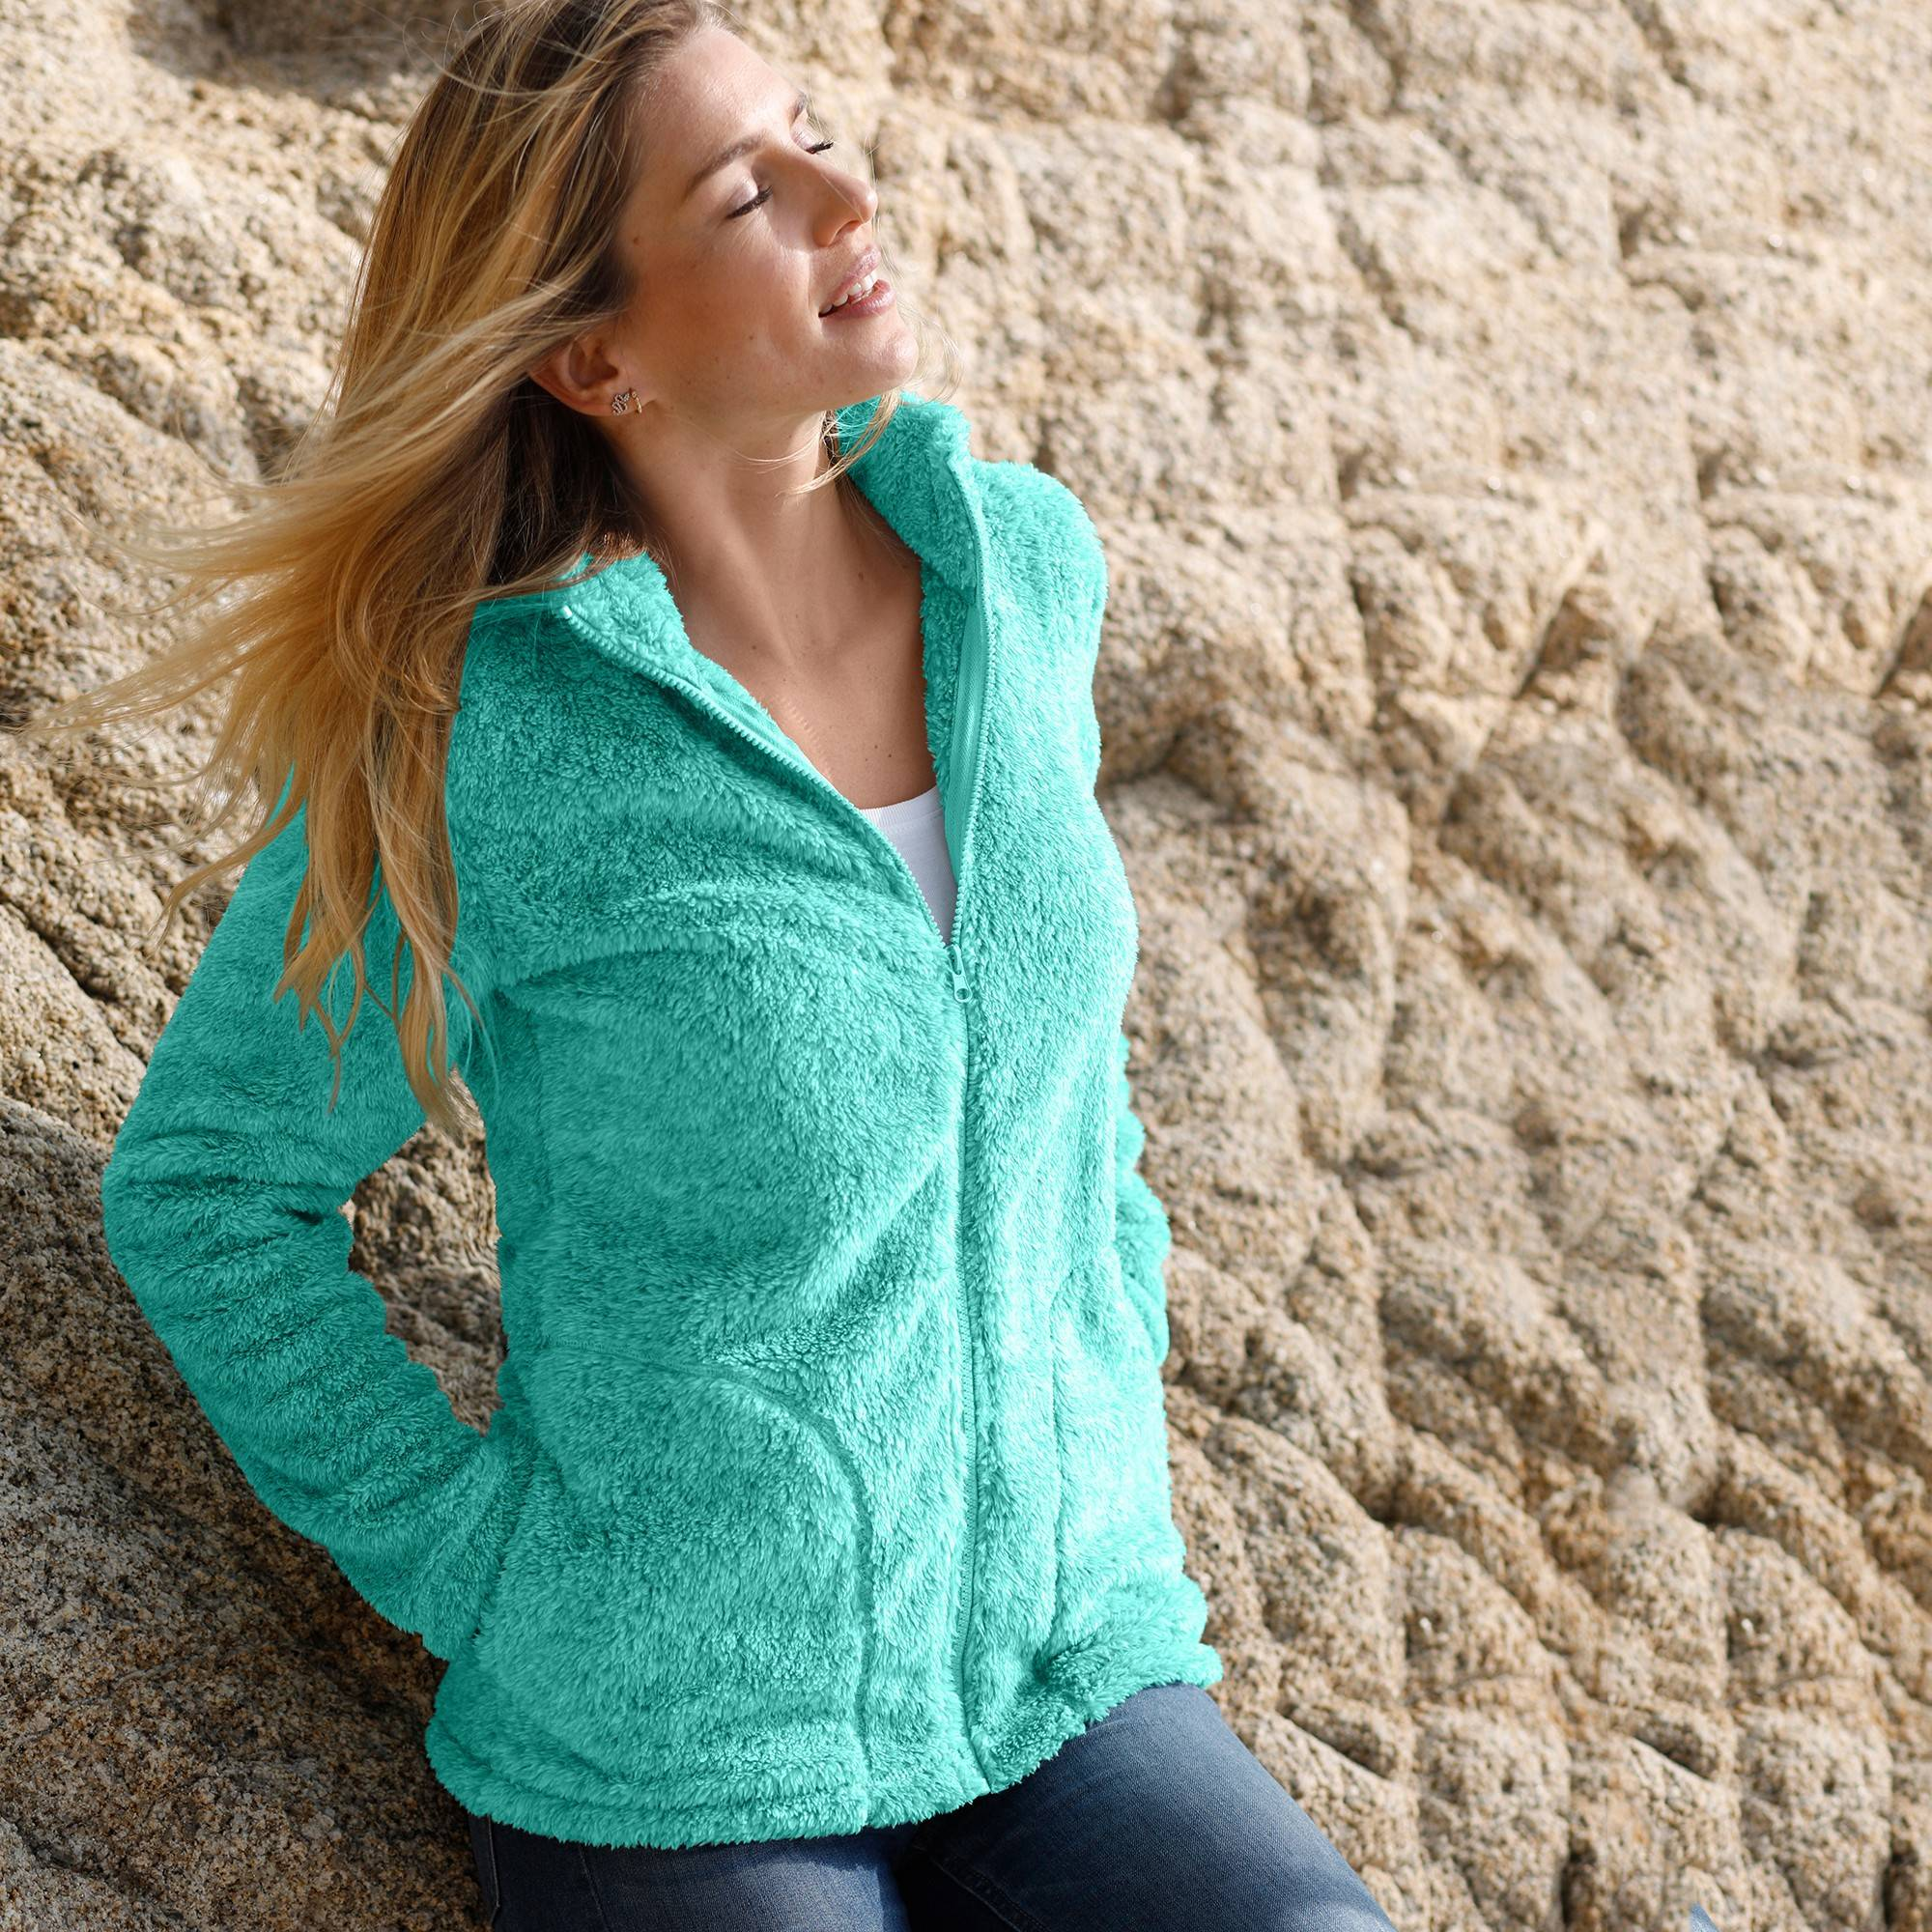 Casual Collection Veste maille peluche - Turquoise - Taille : 56 - Blancheporte